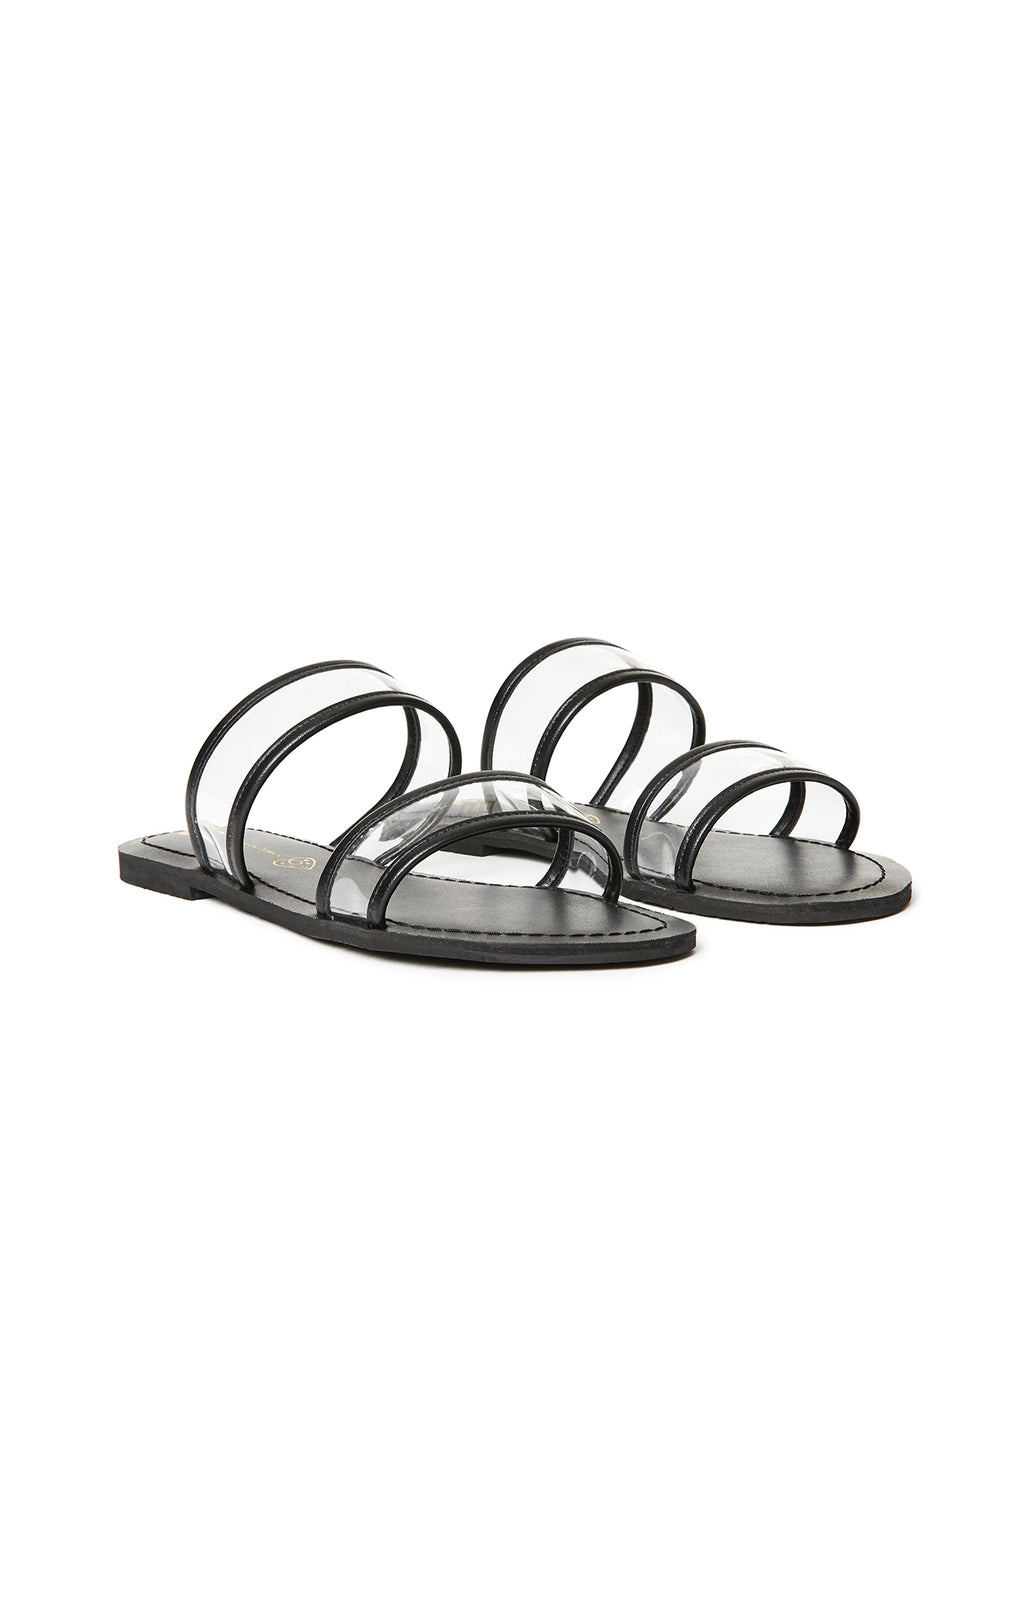 NECTOR DOUBLE STRAP SANDAL